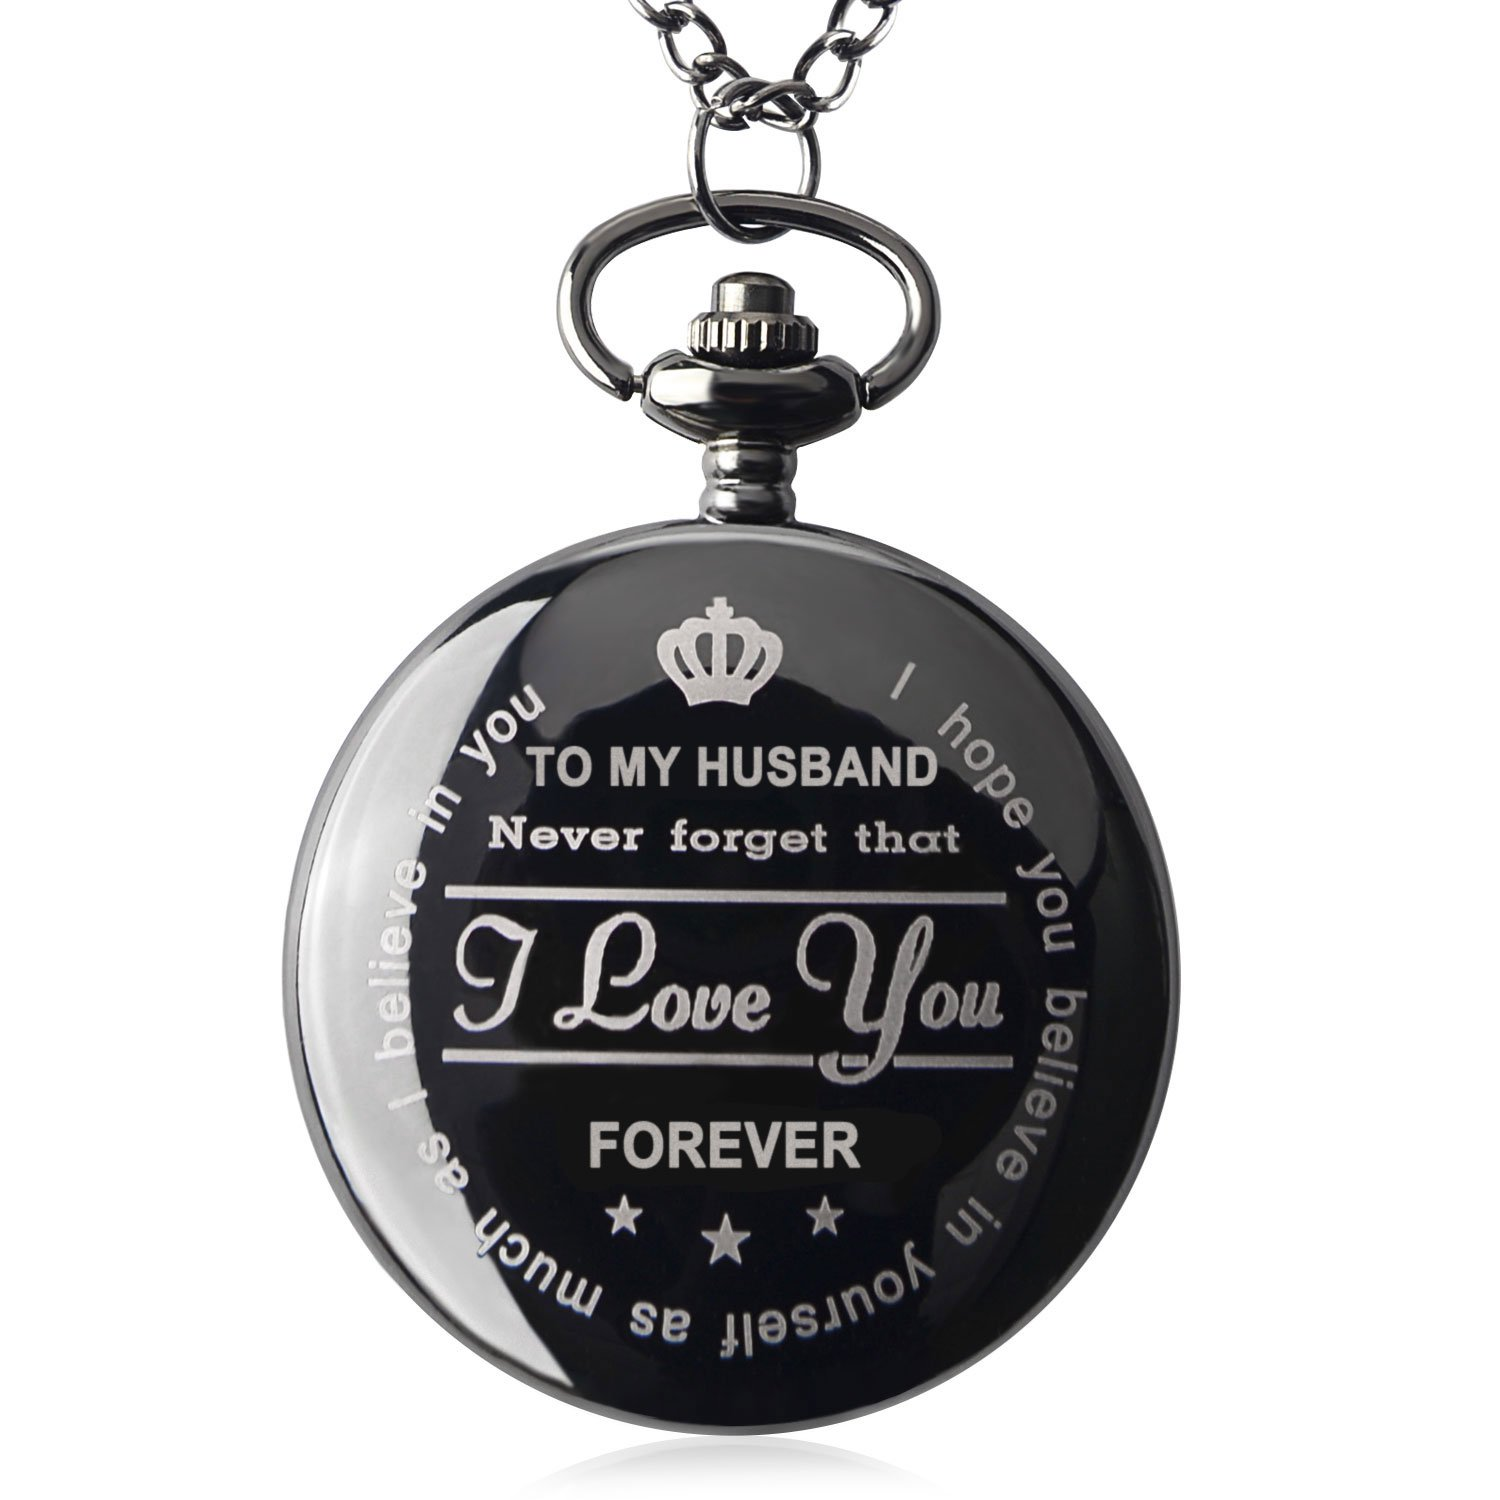 Samuel Pocket Watch with Chain Necklace To My Husband Anniversary Gift from Wife for Him (I Love You Forever)